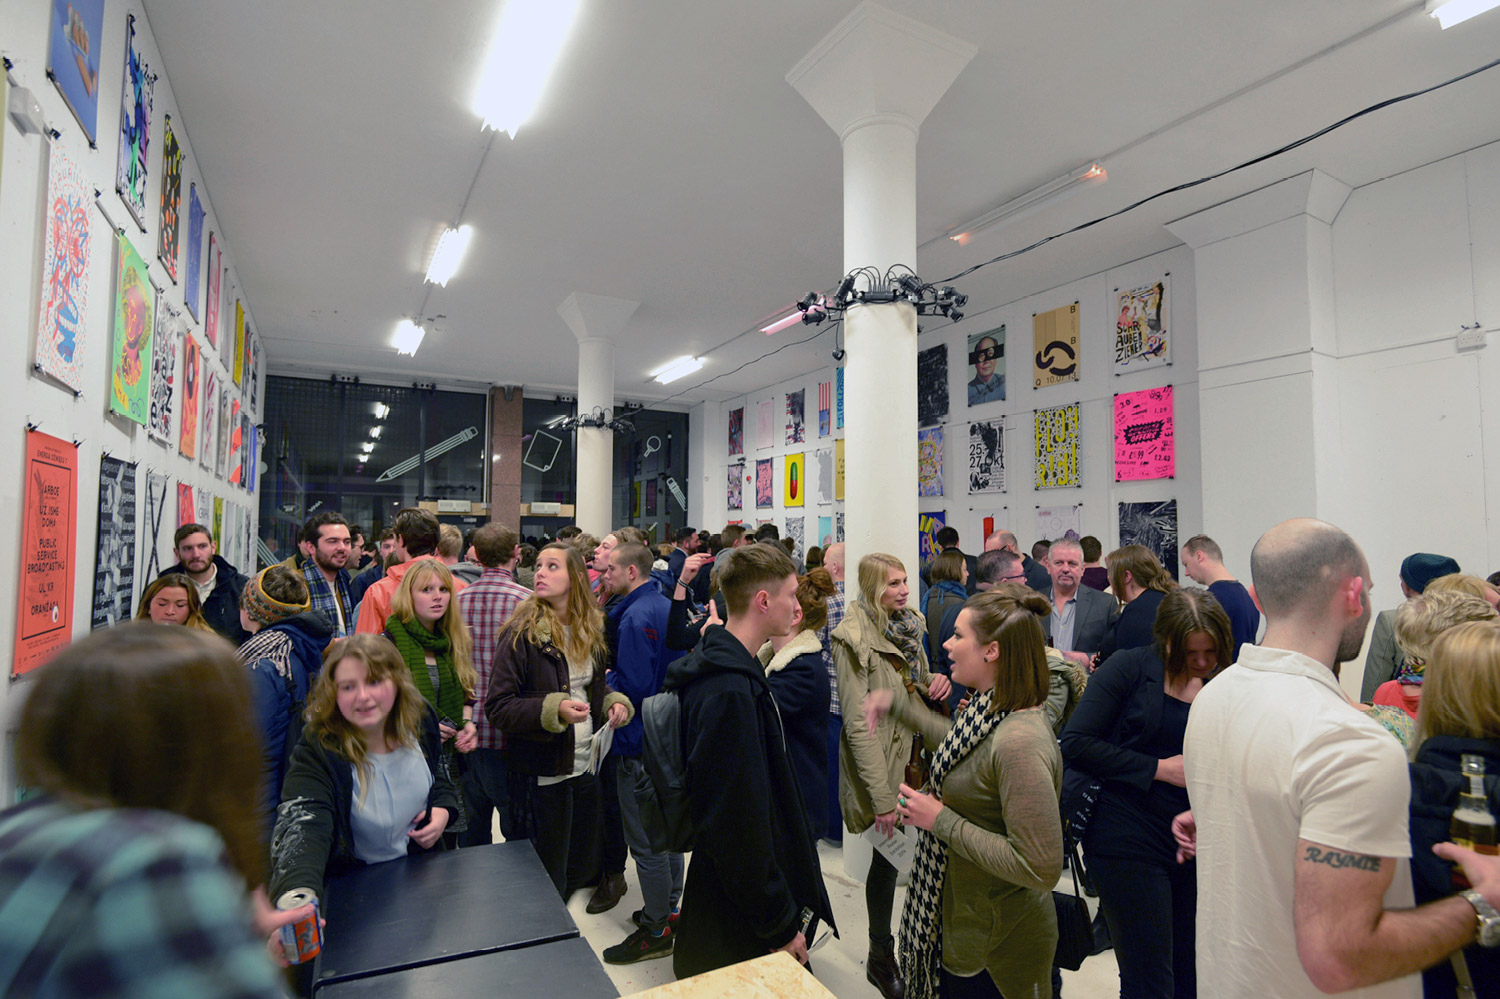 web-930-Warriors-Studio-Graphic-Design-Festival-Scotland-2014